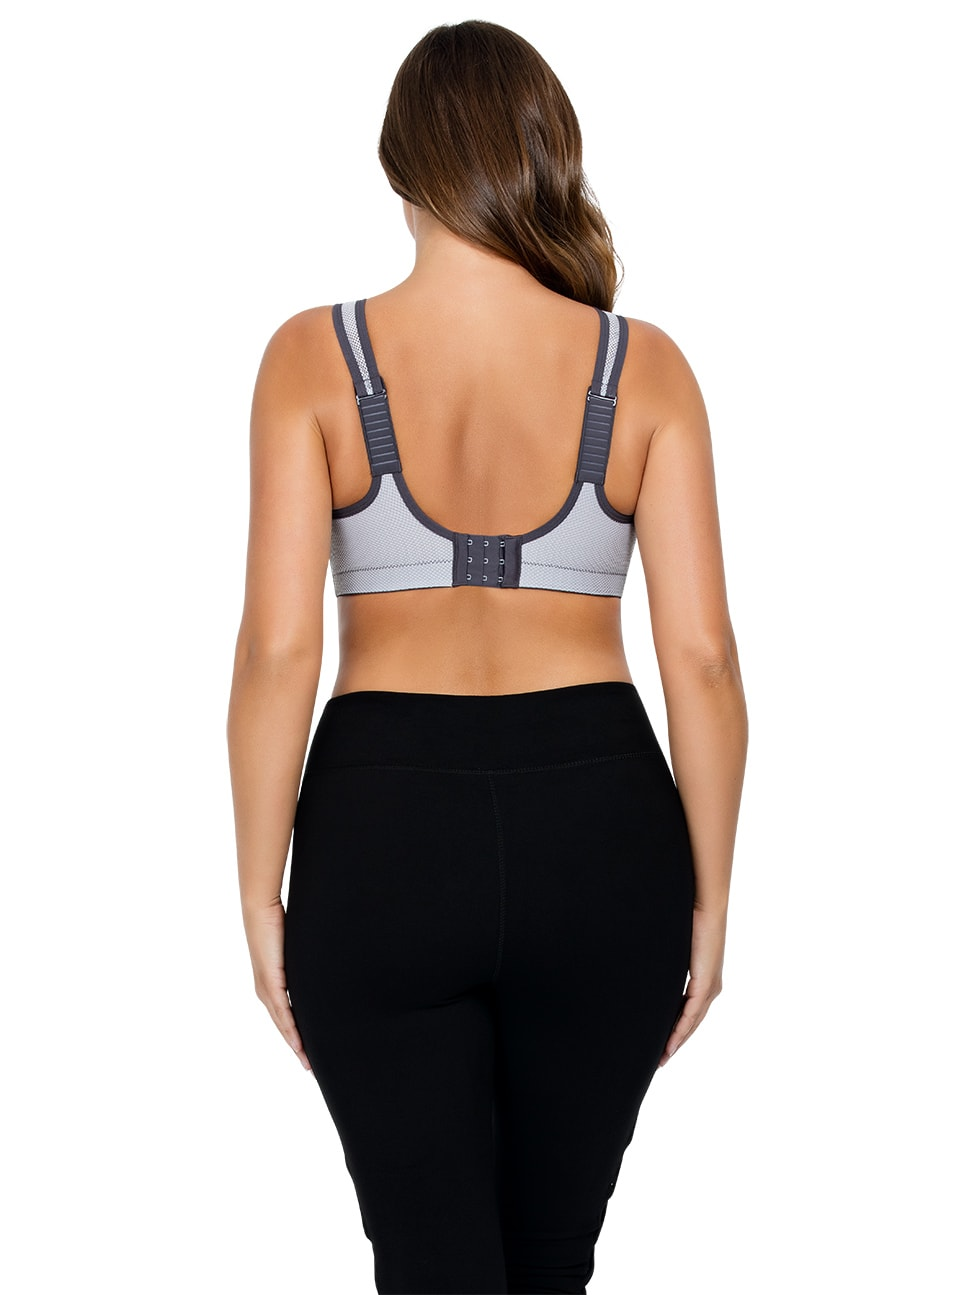 PARFAIT ParfaitActive WirelessUnlinedSportsBraP5542 Rabbit White Back copy - Parfait Active Sports Bra - Rabbit/White - P5542